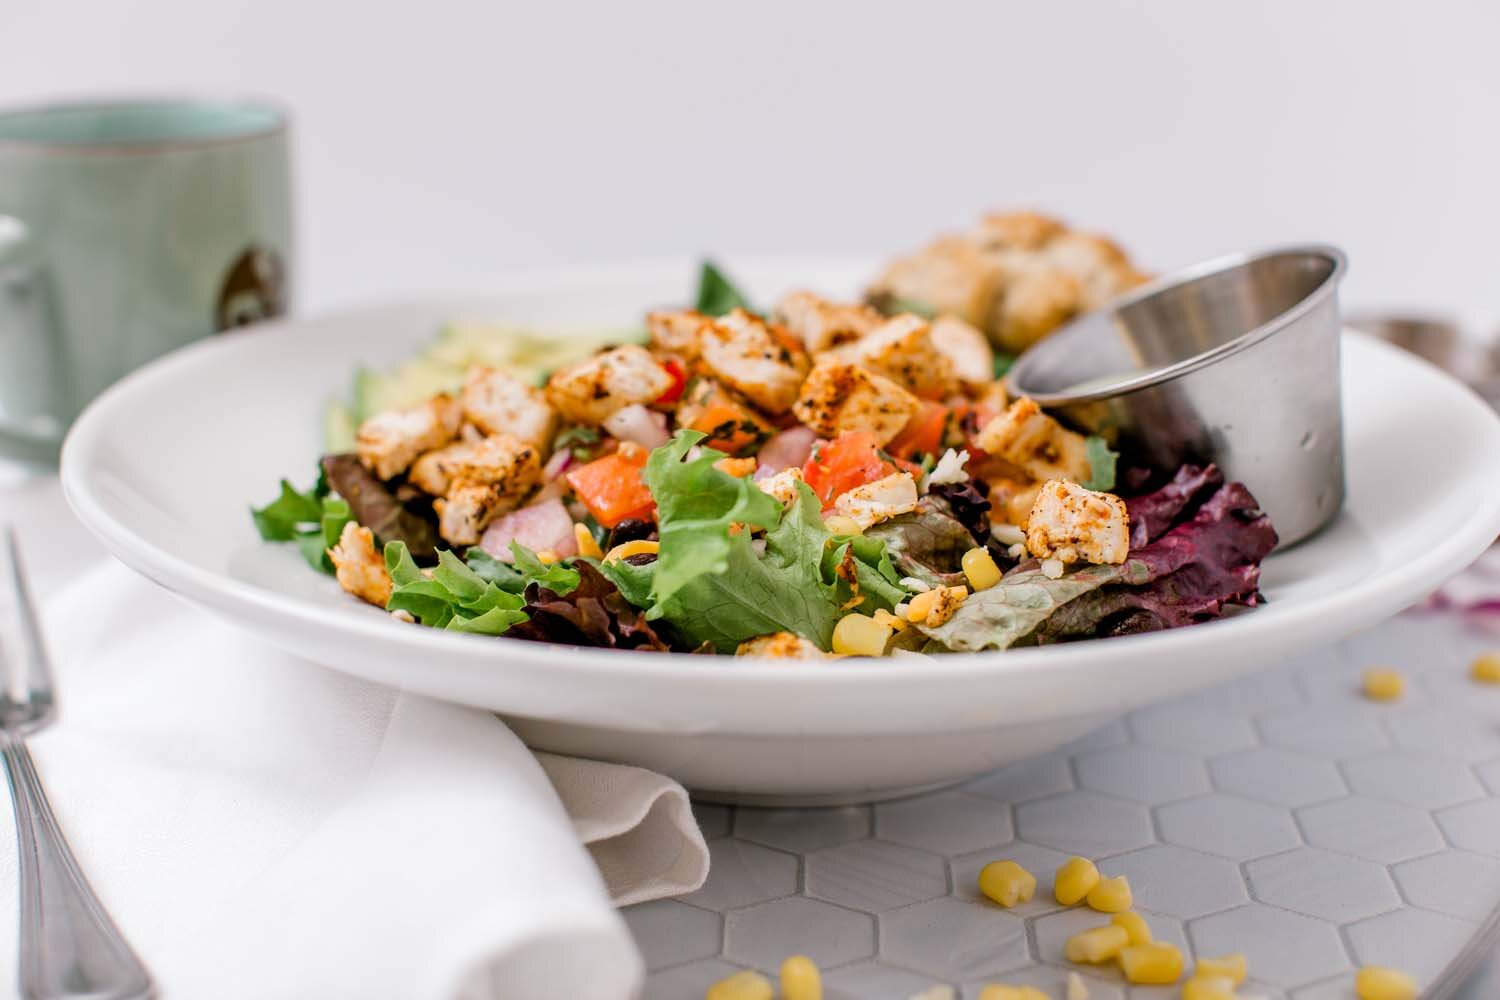 Southwestern Blackened Chicken Salad